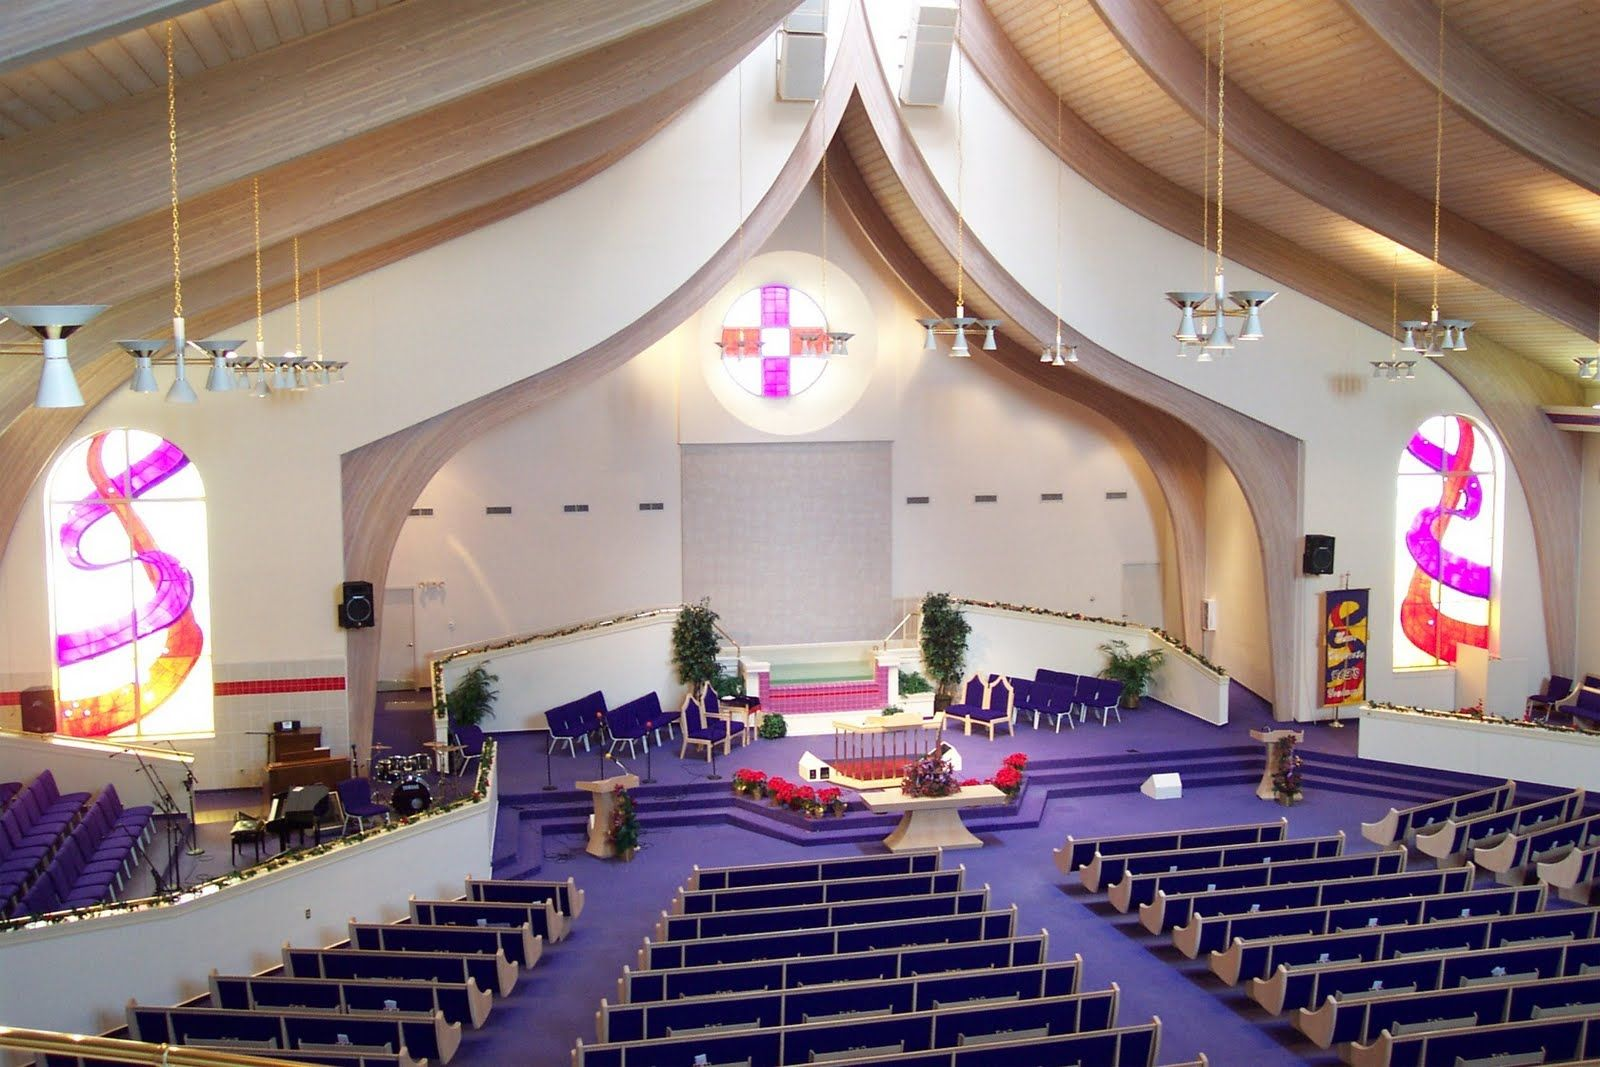 Church Interior Design Ideas church sanctuary modern interior design ideas google search 1000 Images About Church On Pinterest Color Schemes House Exteriors And Church Nursery